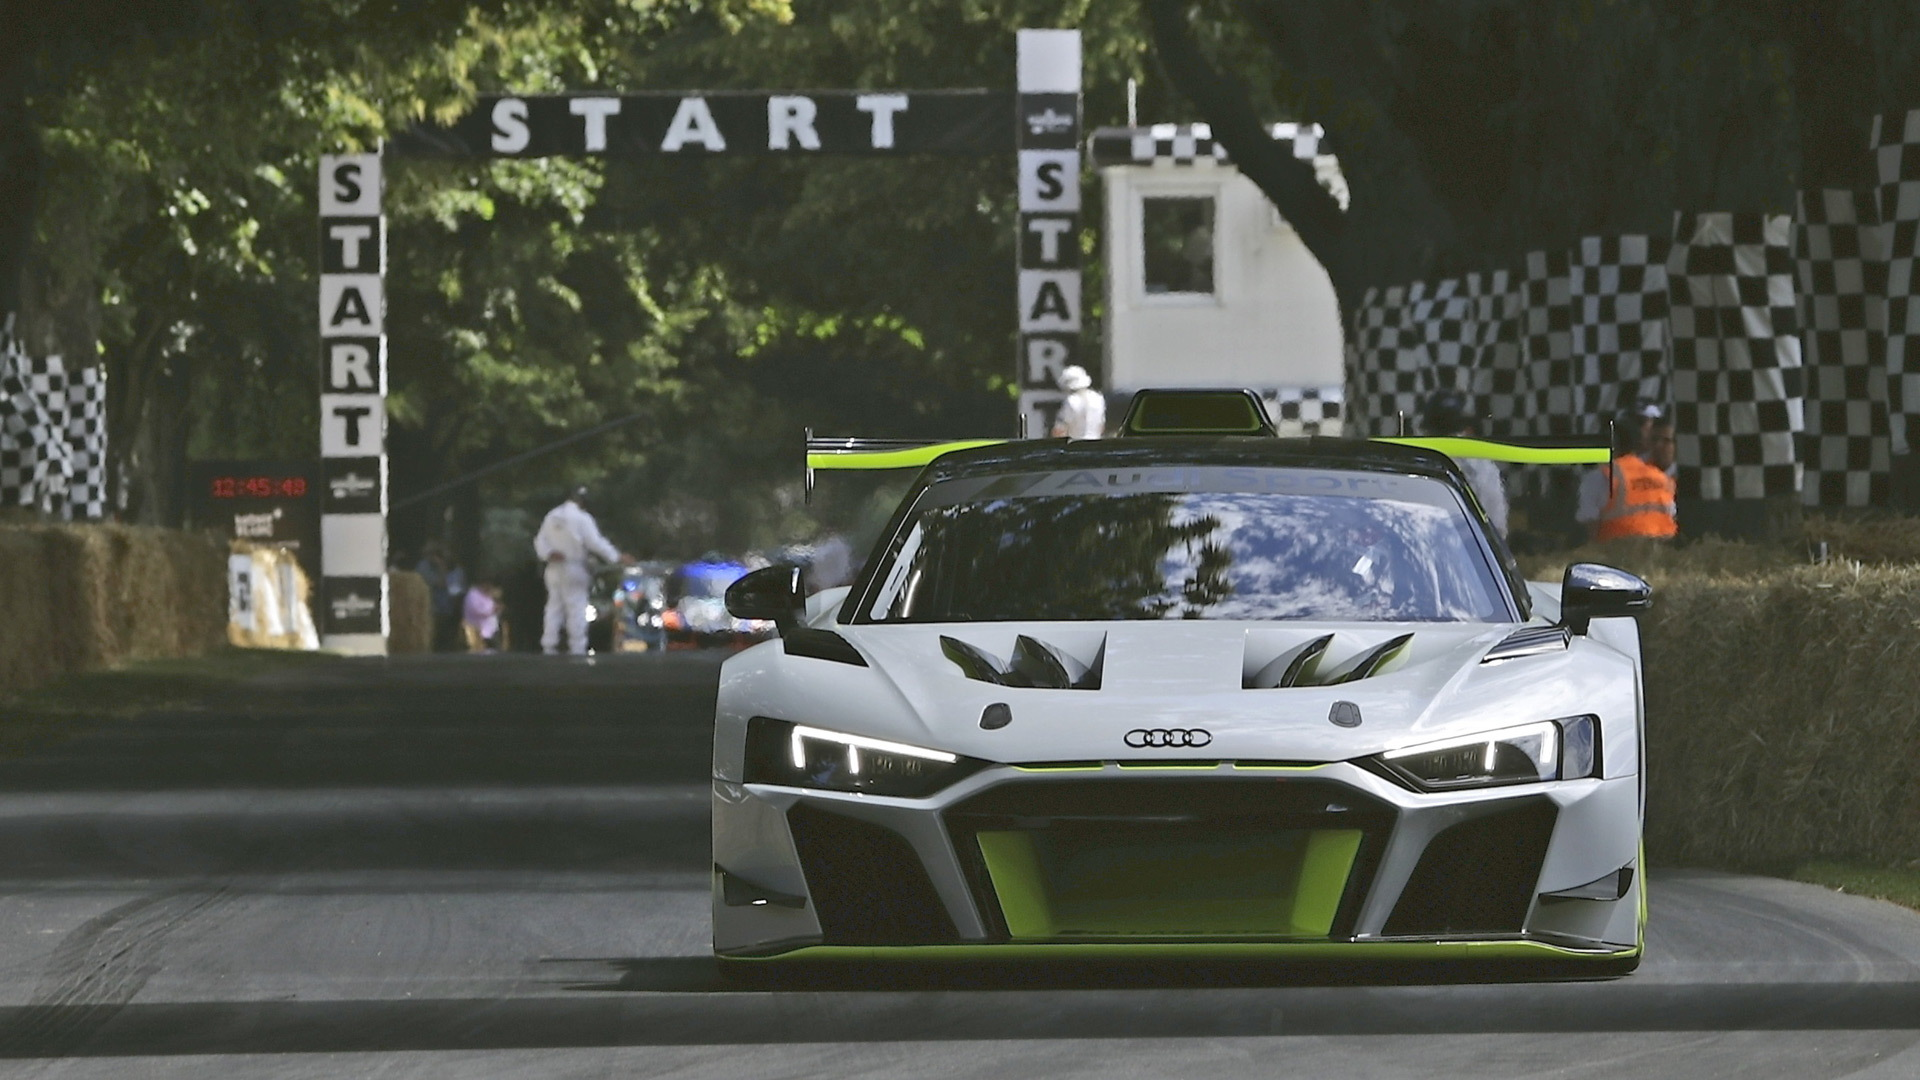 Audi R8 LMS GT2 debuts at Goodwood